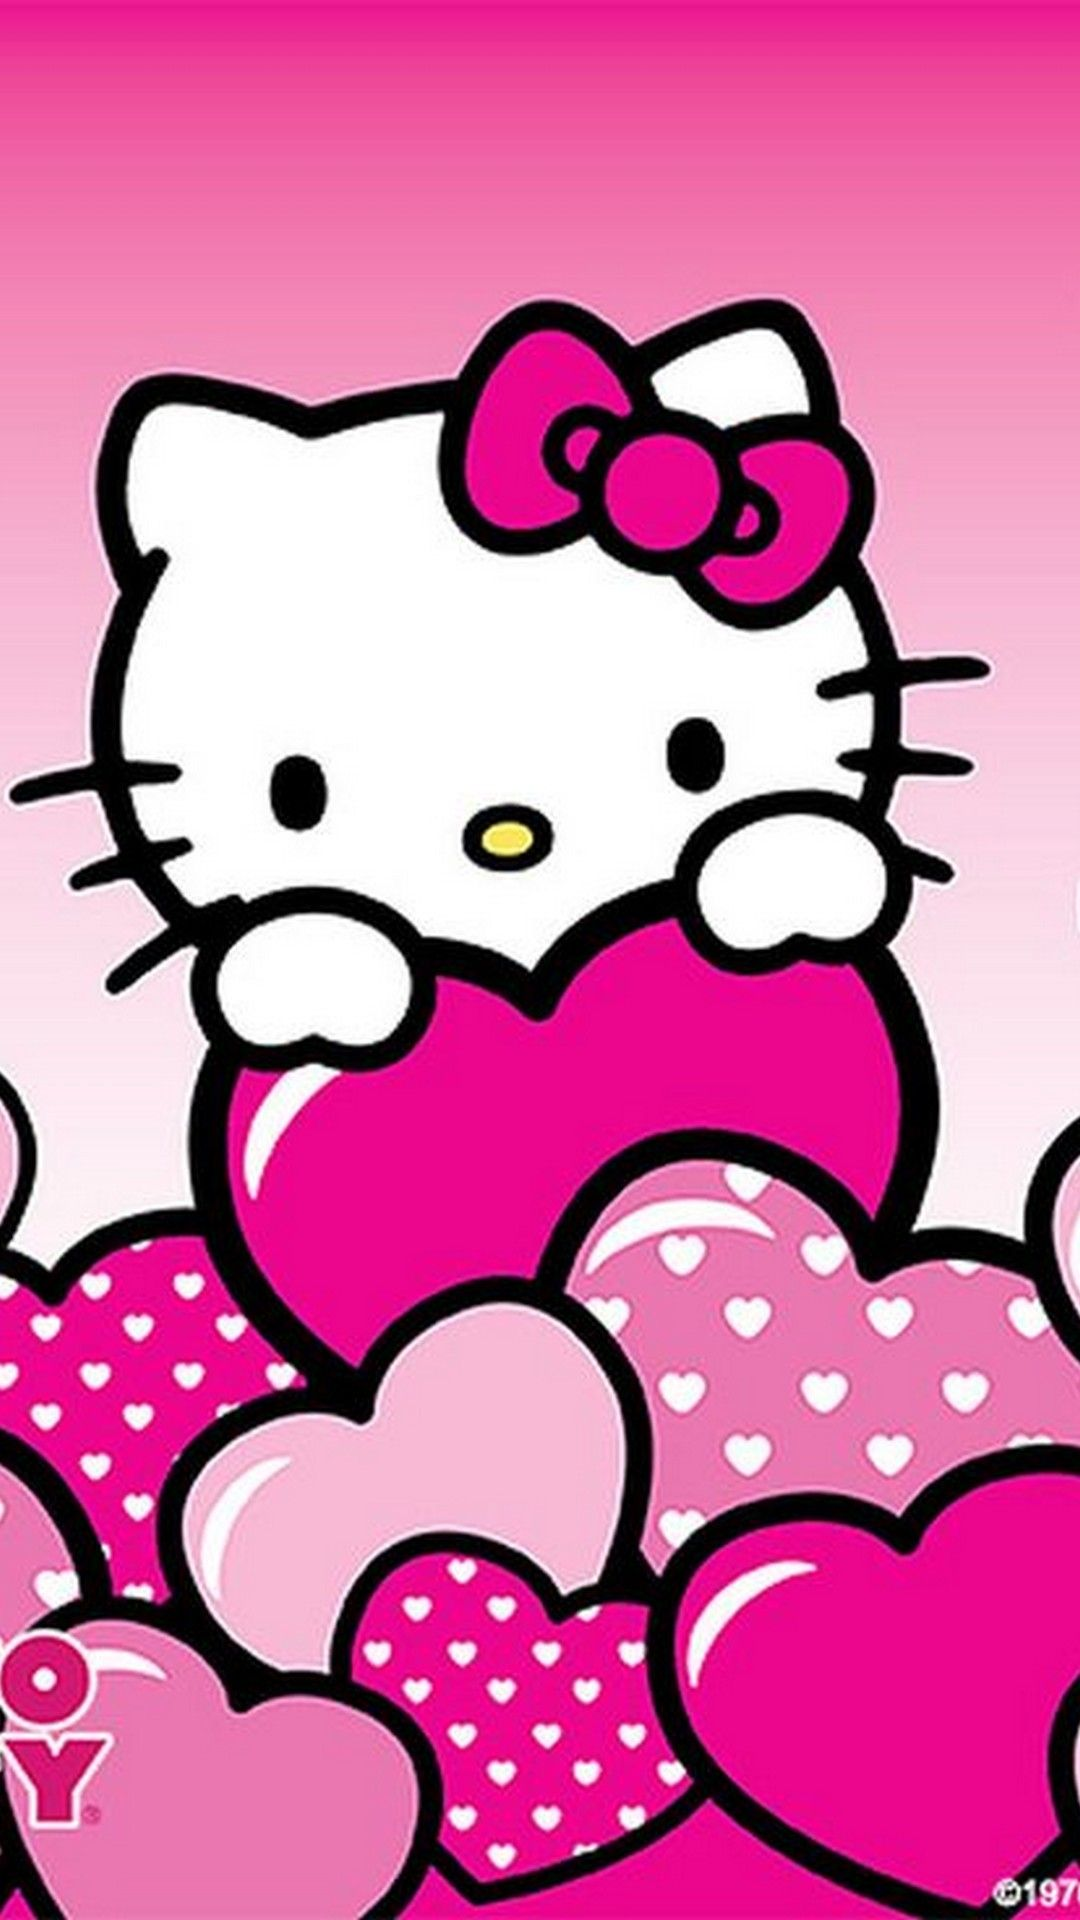 Wallpaper Iphone Hello Kitty 2019 3d Iphone Wallpaper Regarding The Most Incredib In 2020 Hello Kitty Wallpaper Hd Hello Kitty Iphone Wallpaper Hello Kitty Backgrounds